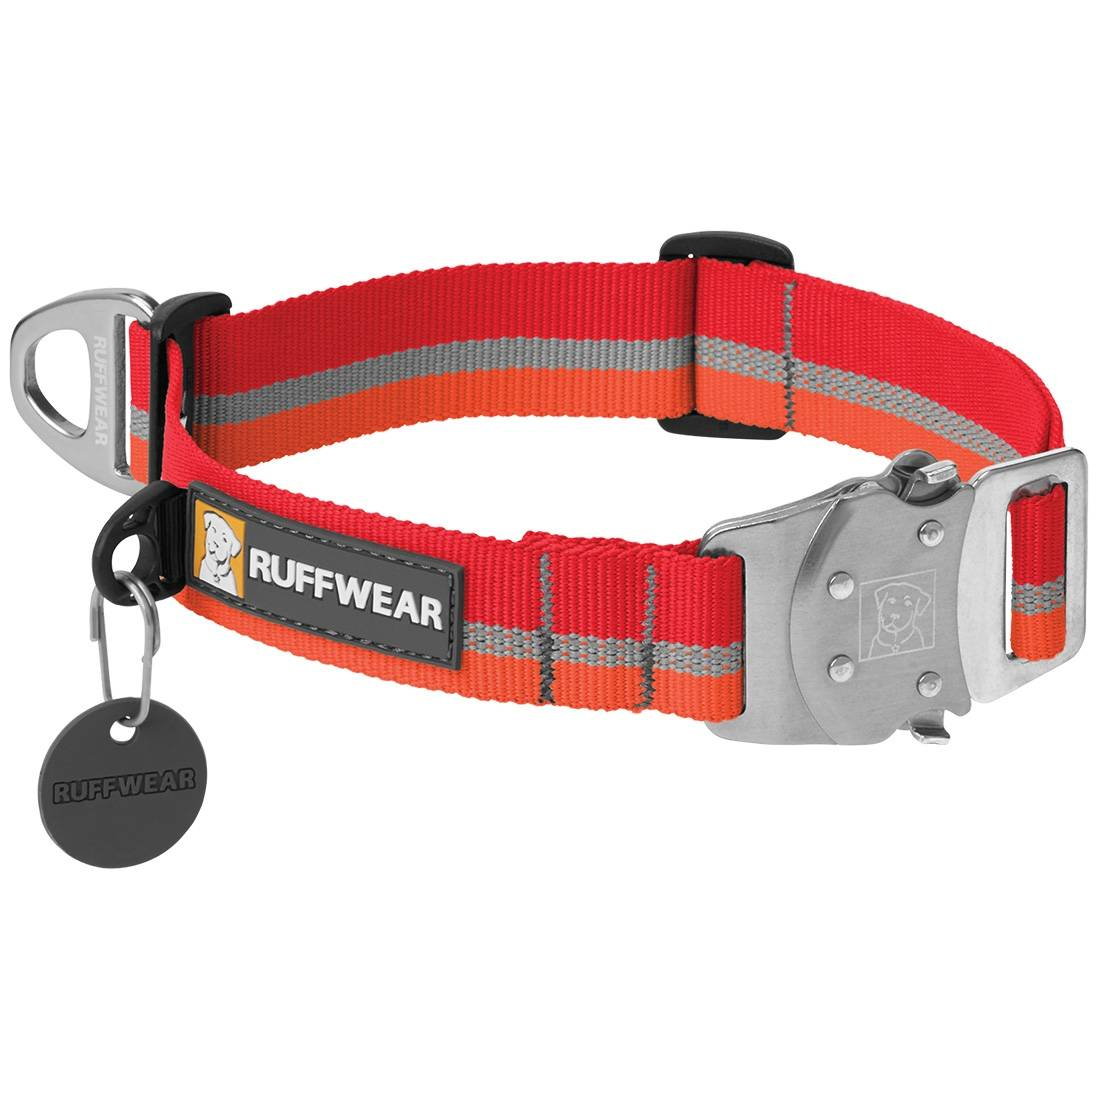 Ruffwear Collier pour chien Ruffwear Top Rope rouge Taille : L